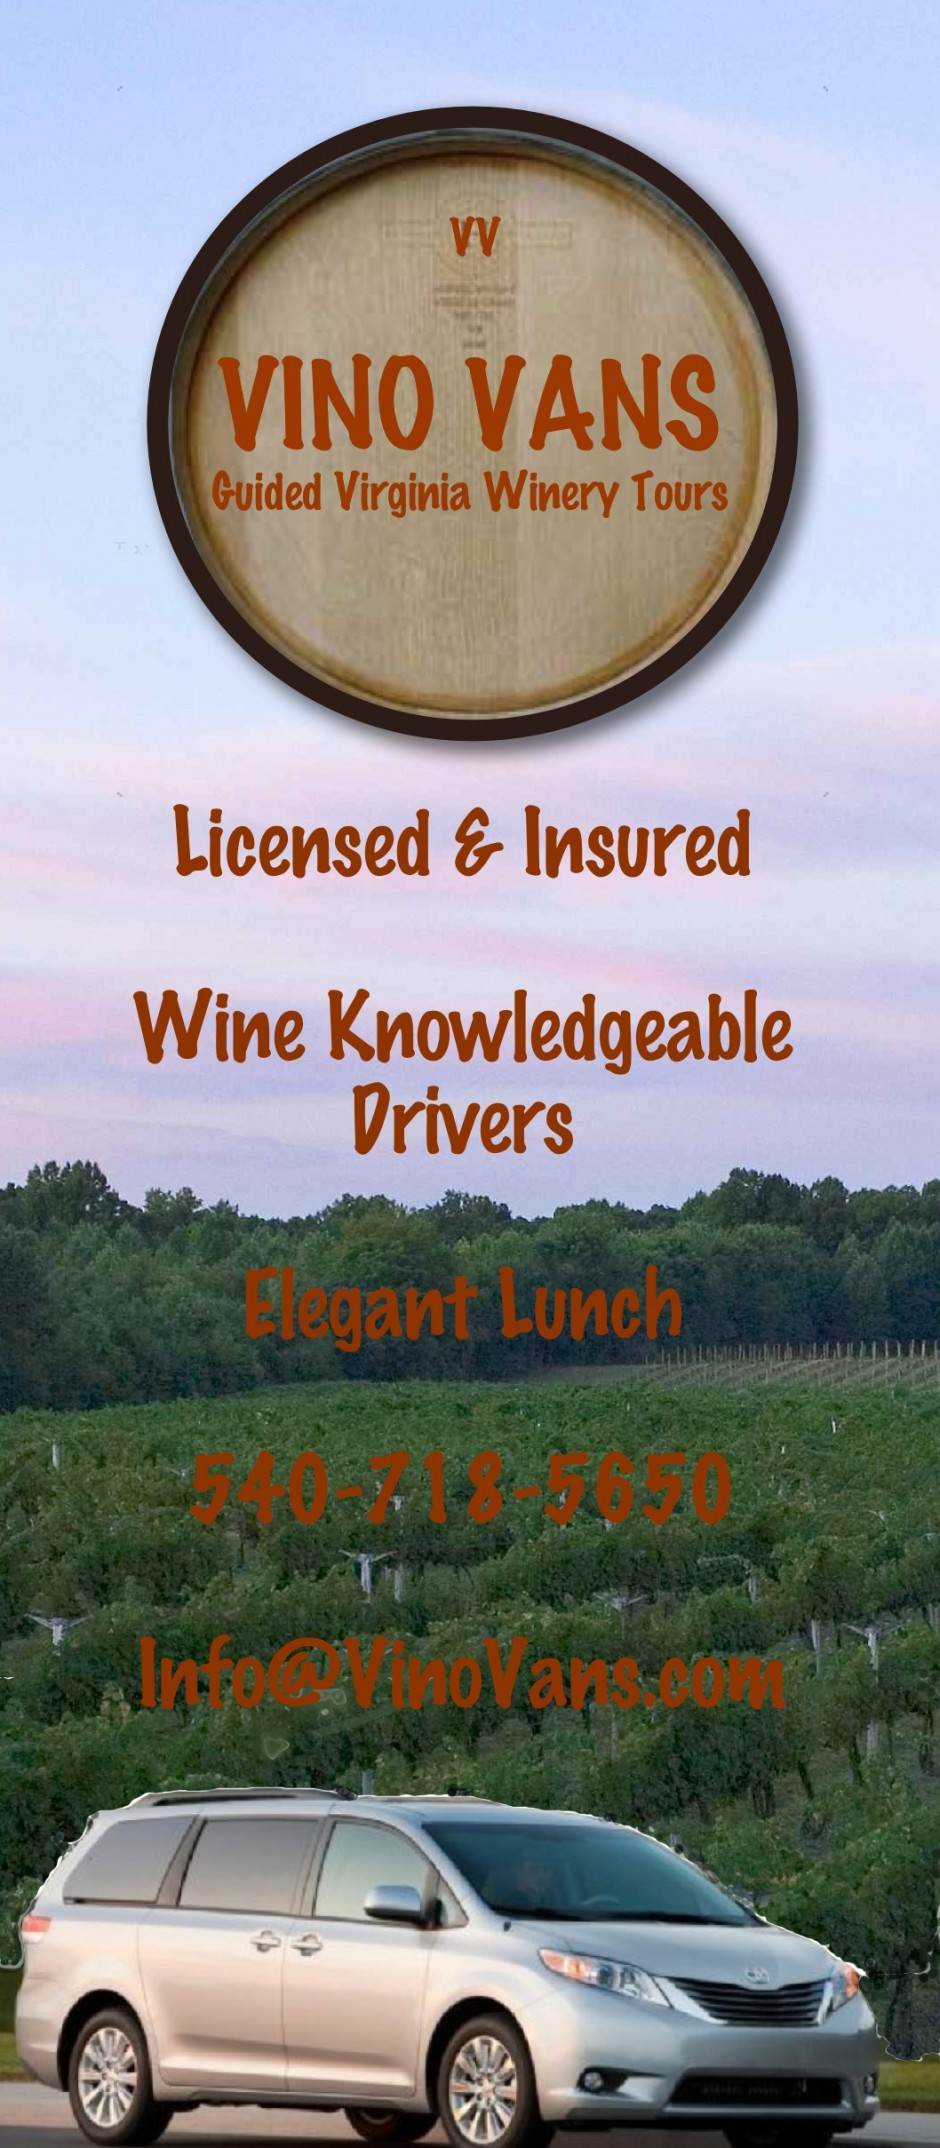 Vino Vans Guided wine tours   540-718-5650